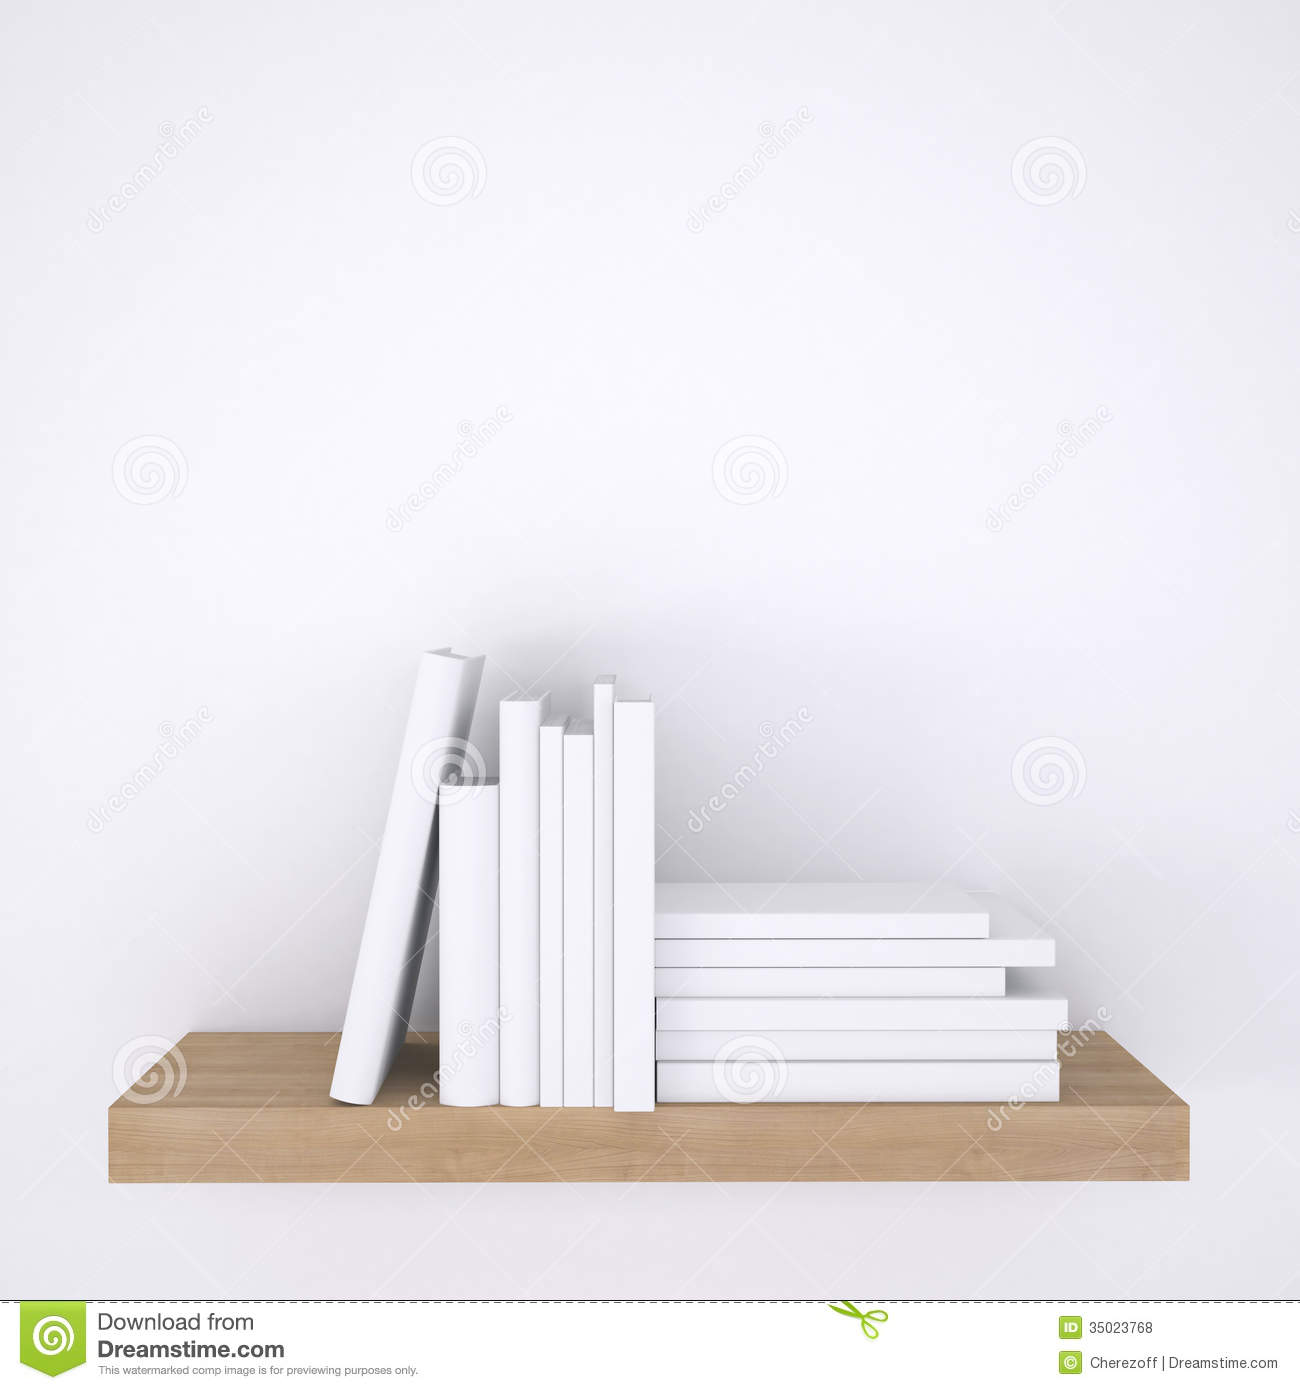 Wooden Shelf With Books On White Wall Background Royalty Free Stock ...